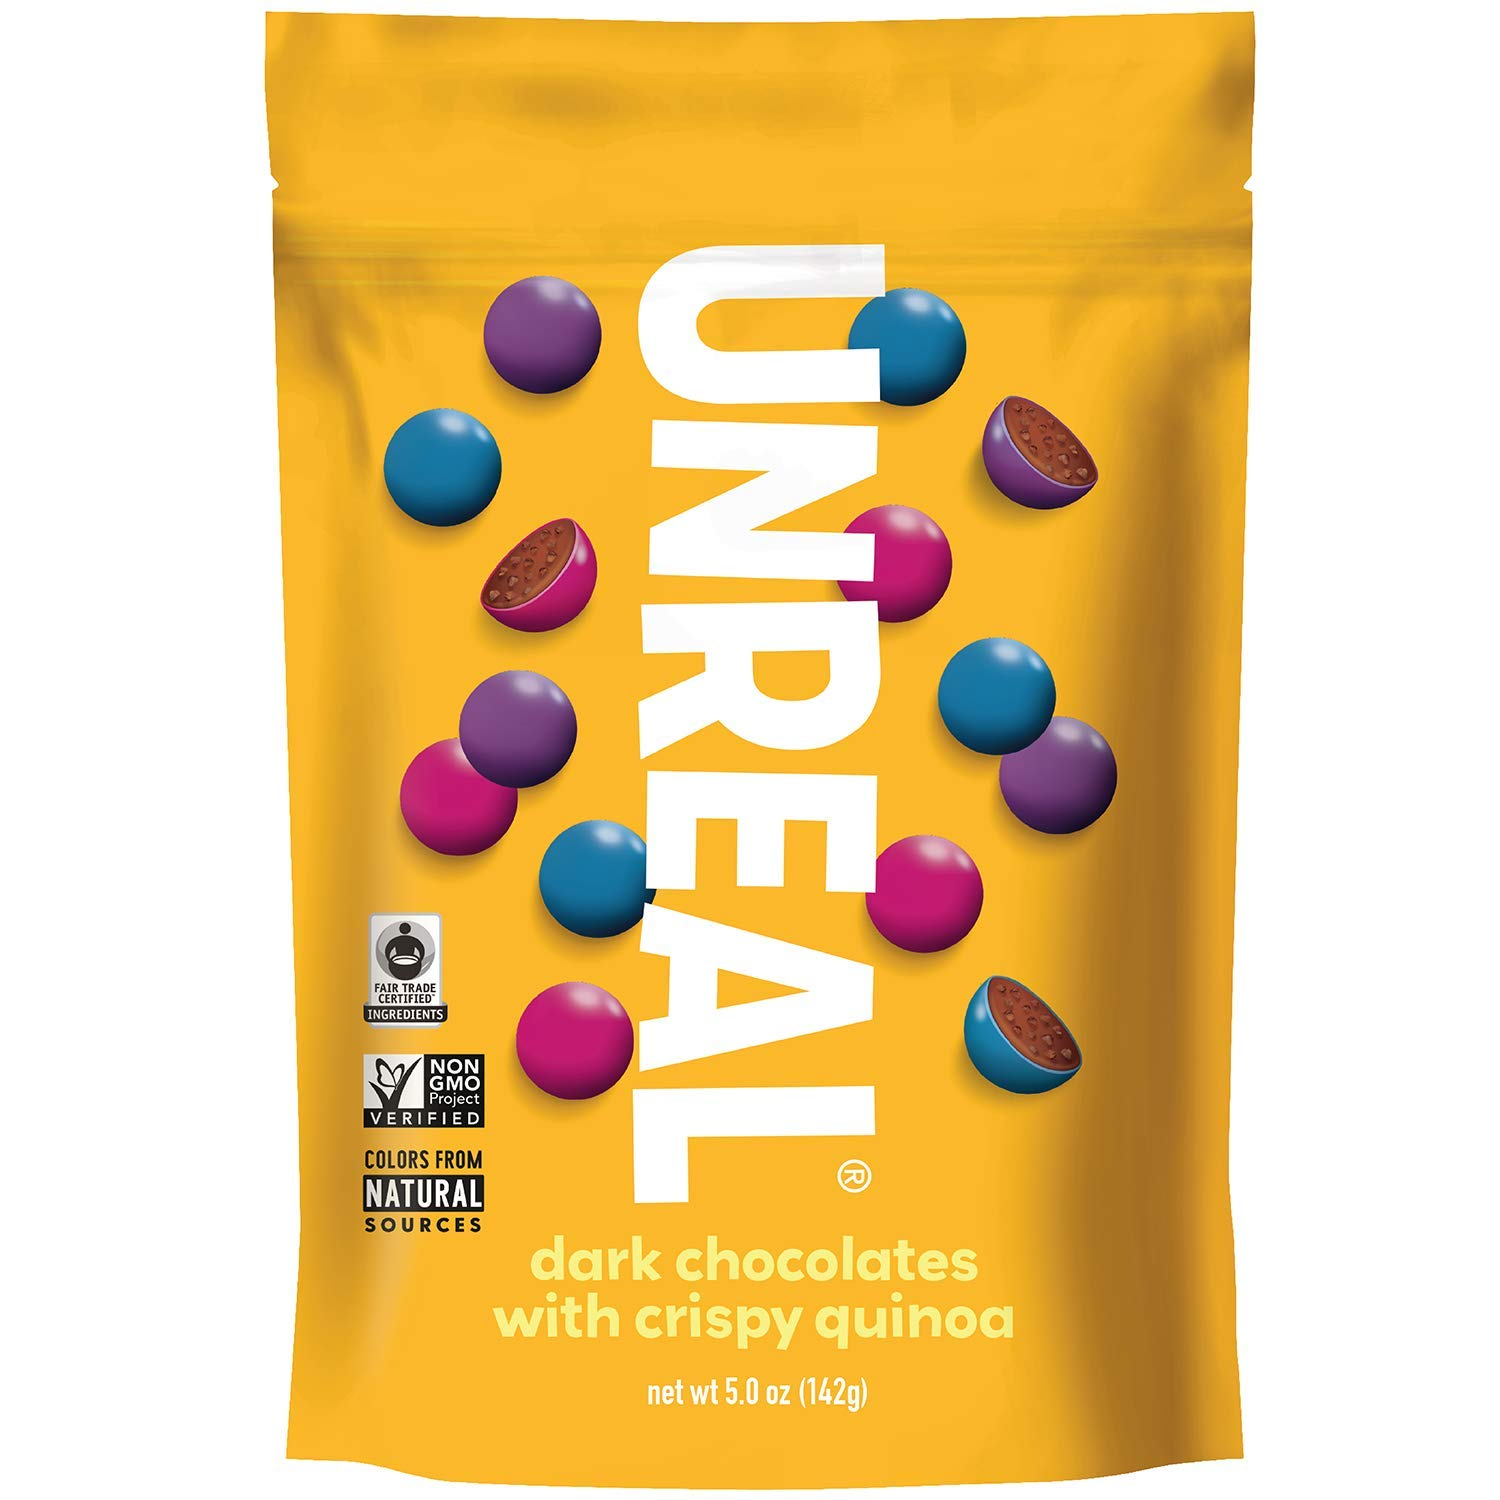 UNREAL Dark Chocolate Crispy Quinoa Gems   Non-GMO, Vegan Certified, Colors from Nature   6 Bags by UNREAL